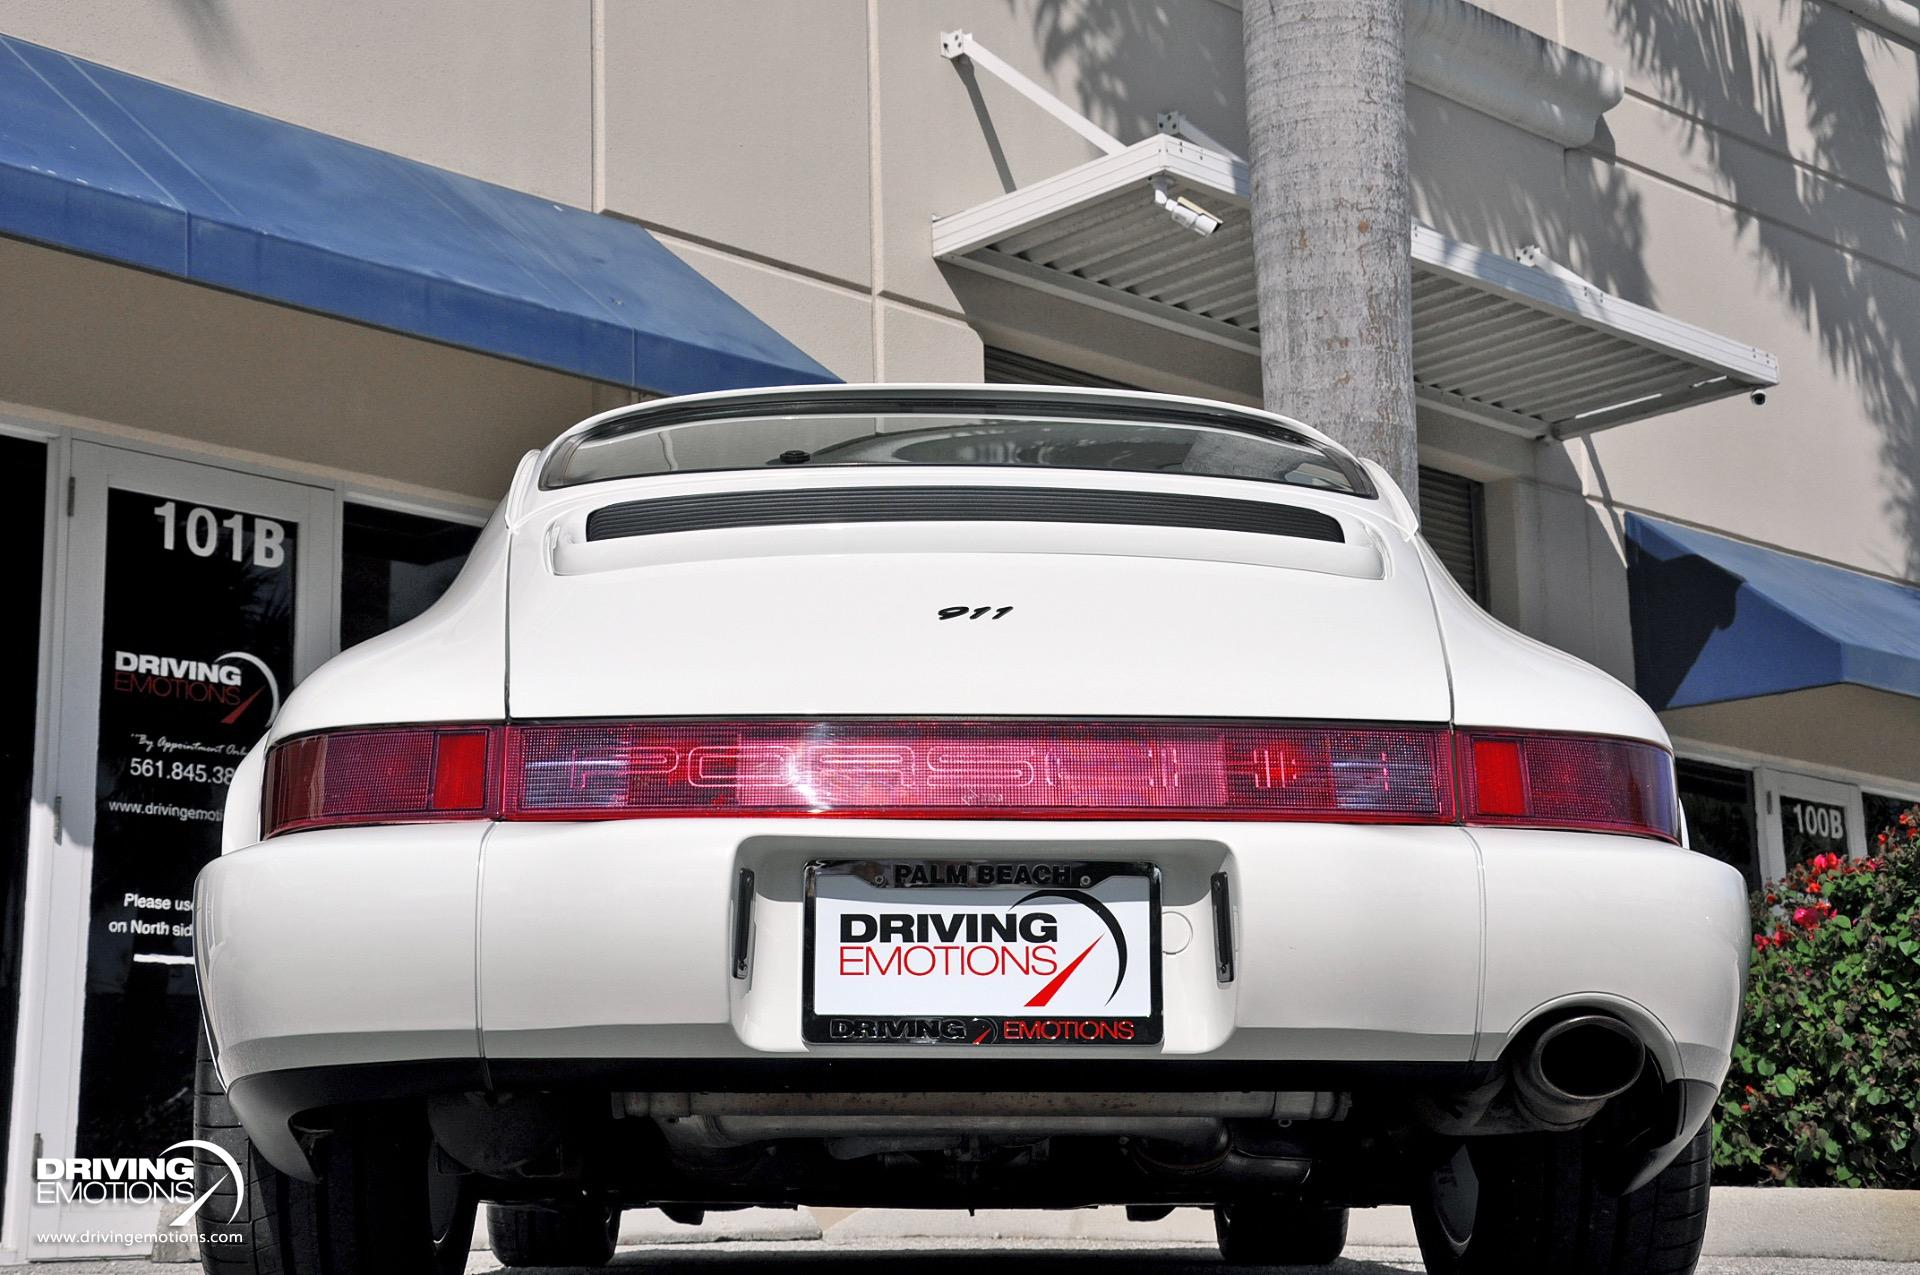 Used 1992 Porsche 911 Carrera 2 Coupe RS Lightweight Cup Upgrades! One of a Kind Build!! | Lake Park, FL